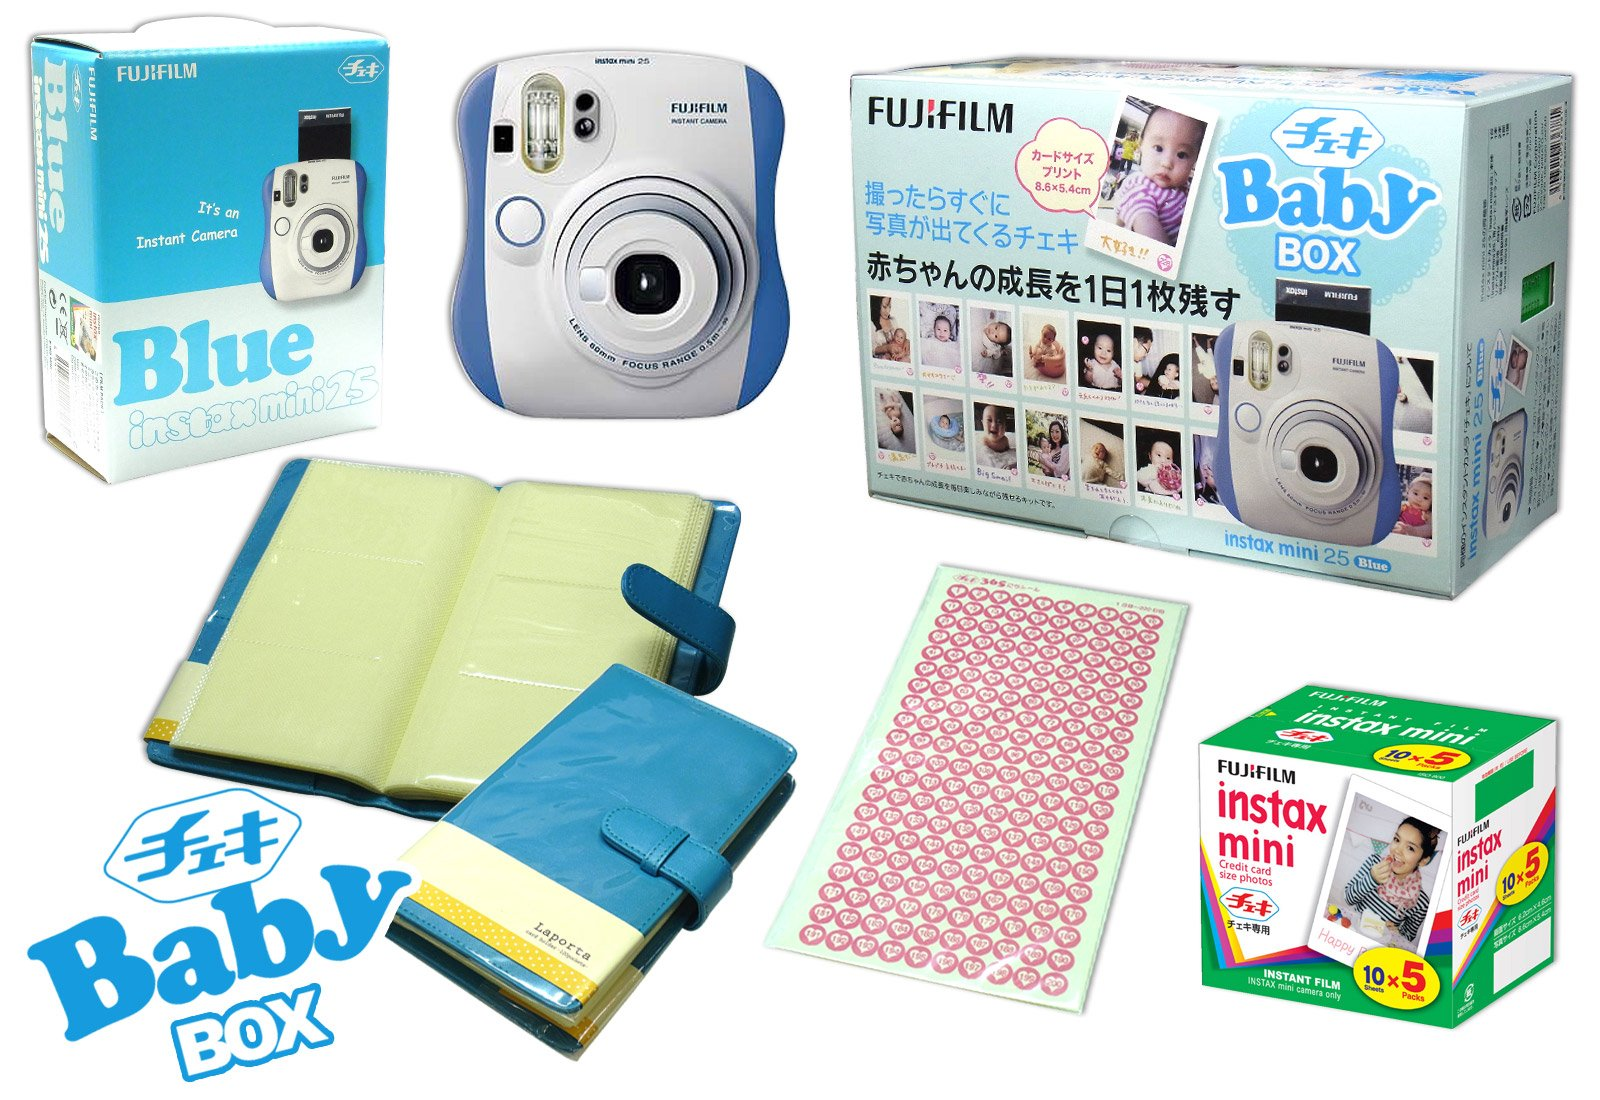 Fuji Instax Mini 25 Limited Version 1 Year Instax Baby Set Blue + 50 Films + Album + 365 Stickers Fuji Instax